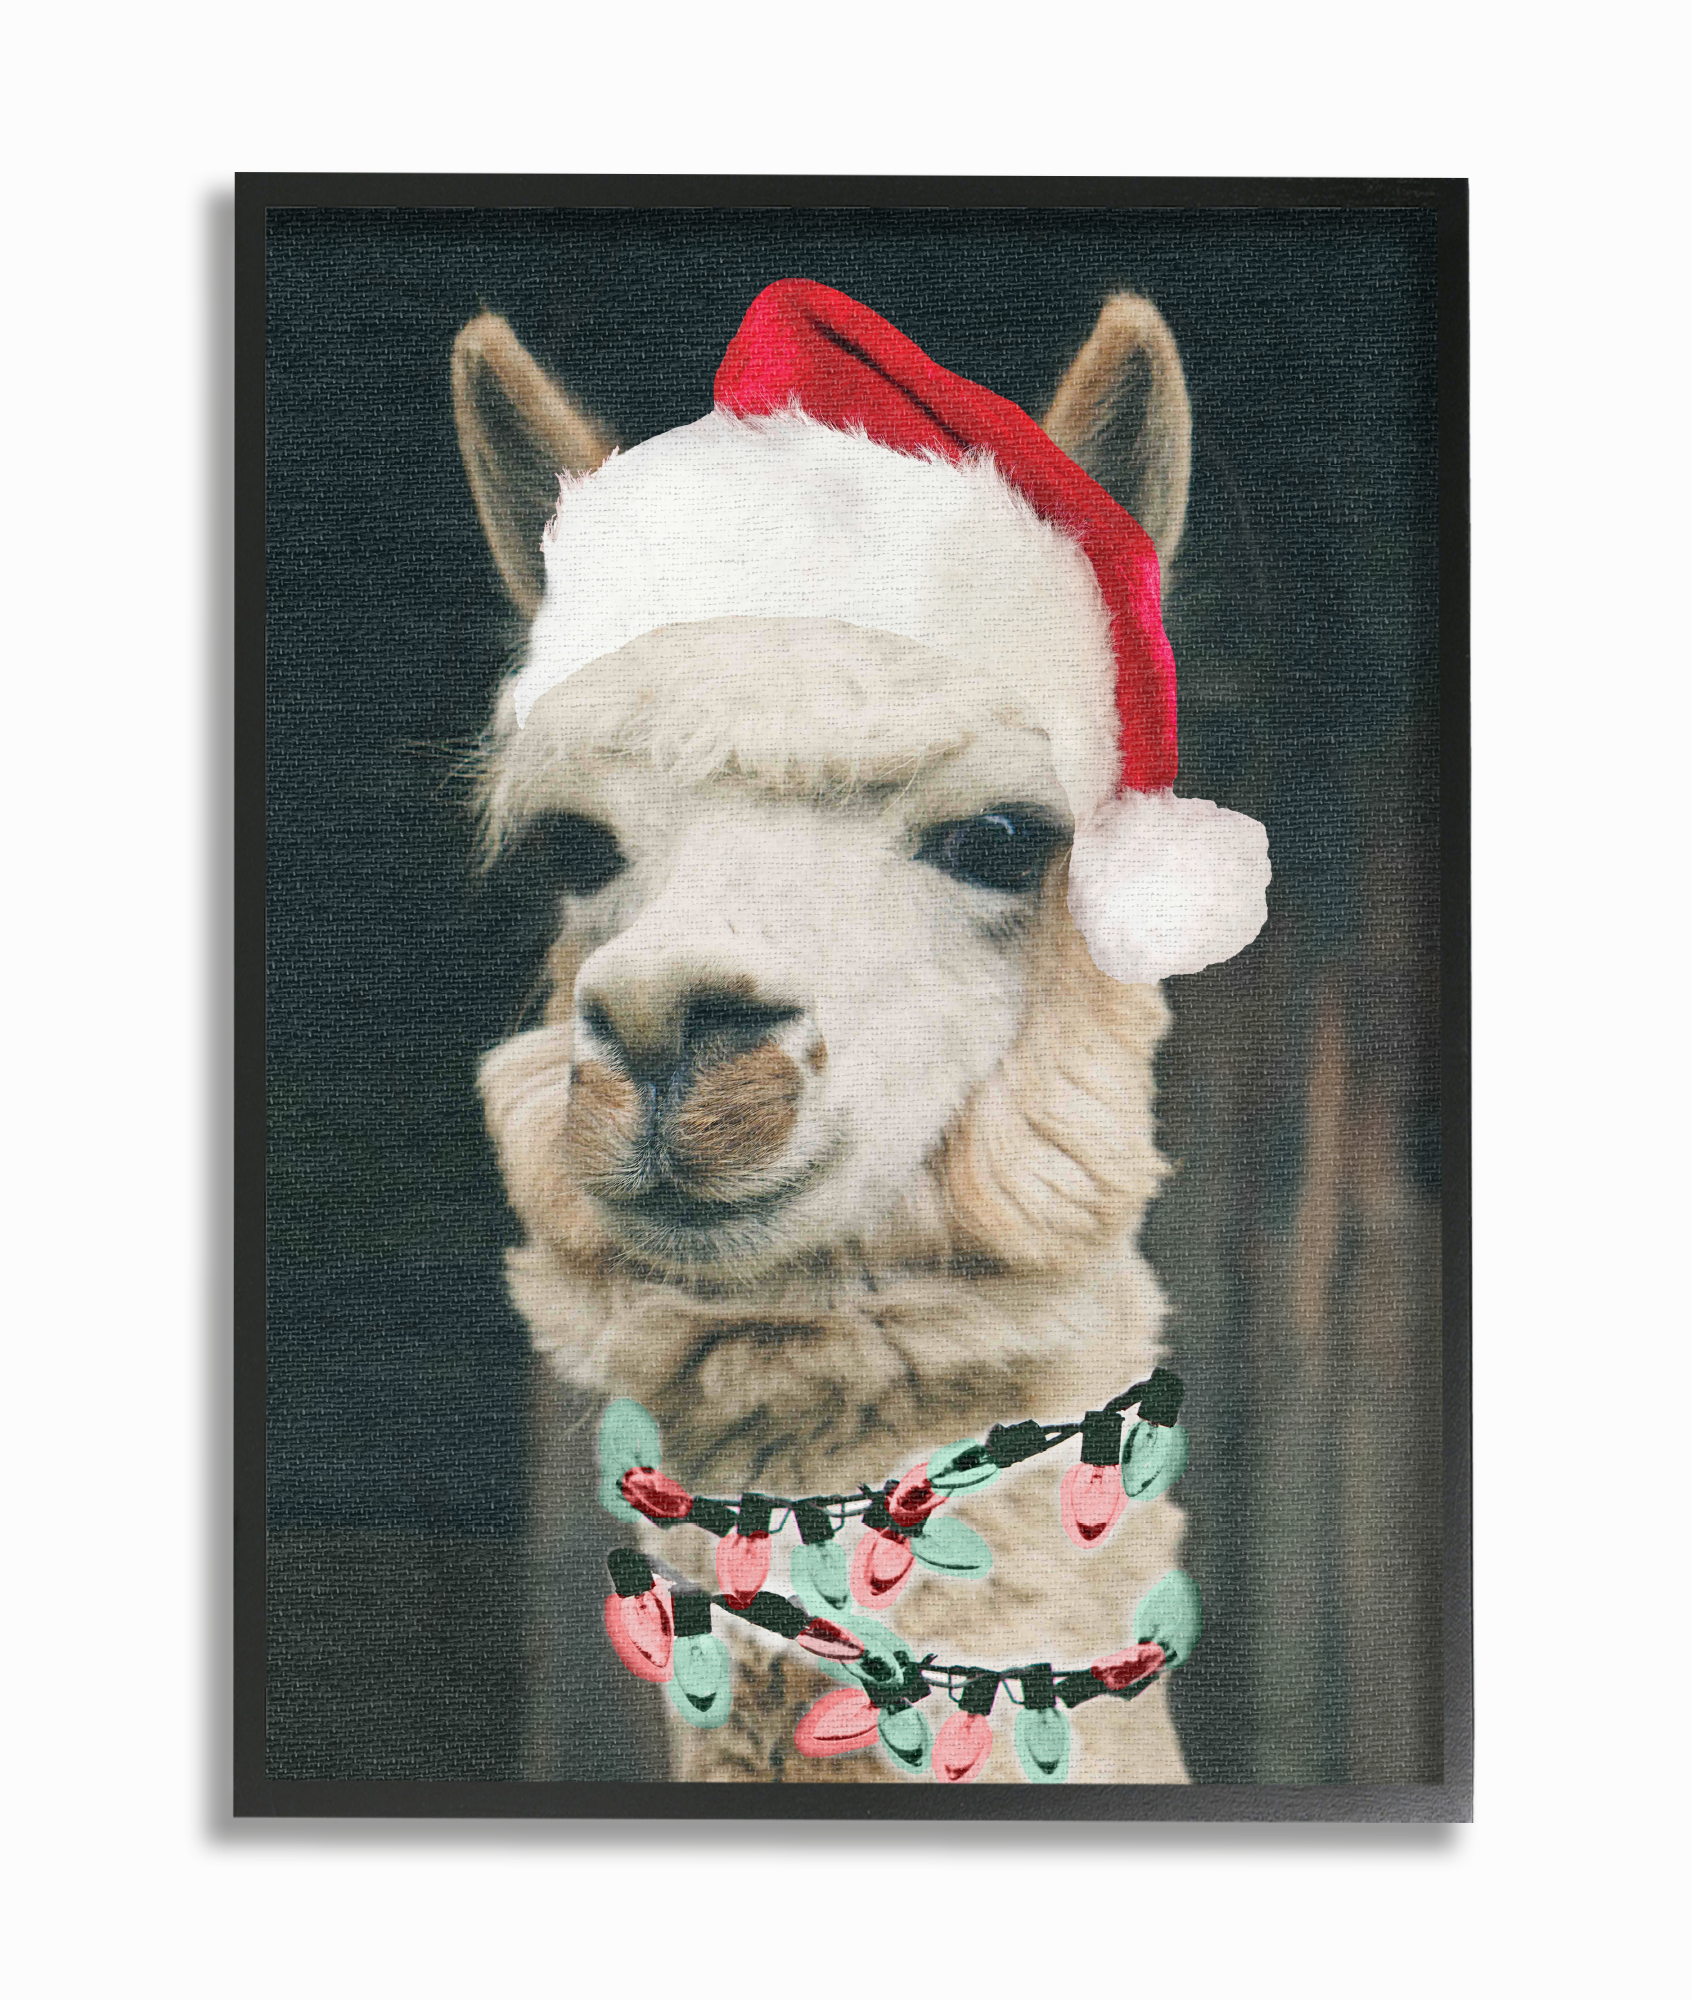 The Stupell Home Decor Collection Christmas Llama Oversized Framed Giclee Texturized Art,... by Stupell Industries